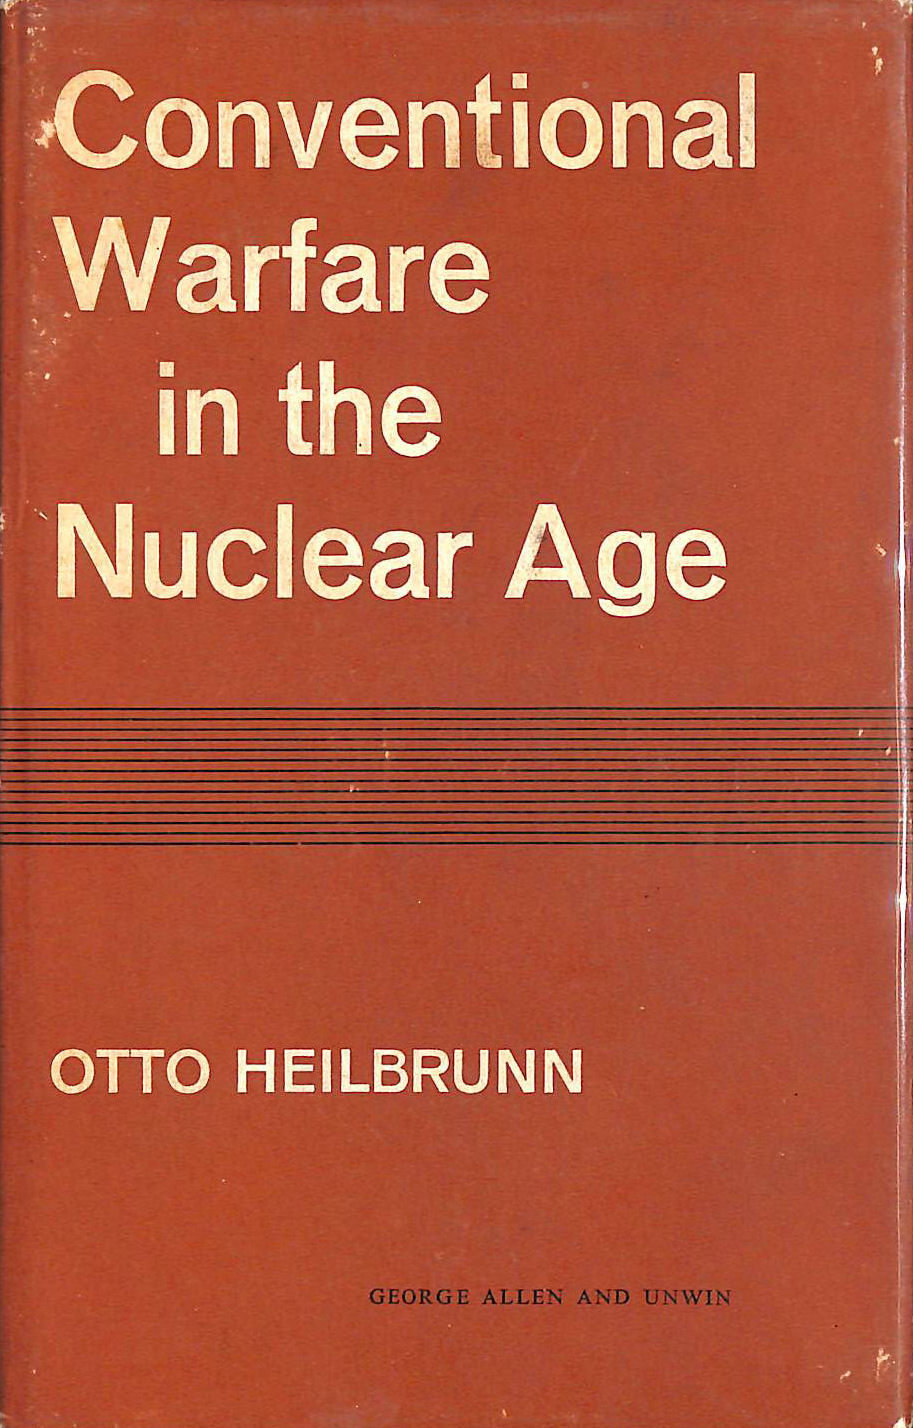 Image for Conventional Warfare in the Nuclear Age